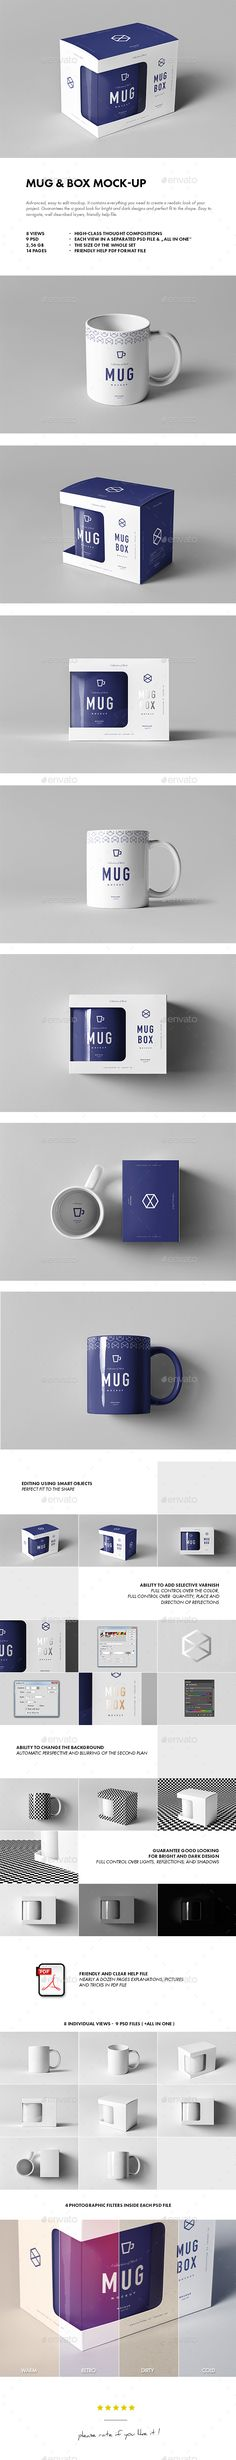 Mug & Box Mock-up https://graphicriver.net/item/mug-box-mockup/19056346?s_rank=17&ref=7h10